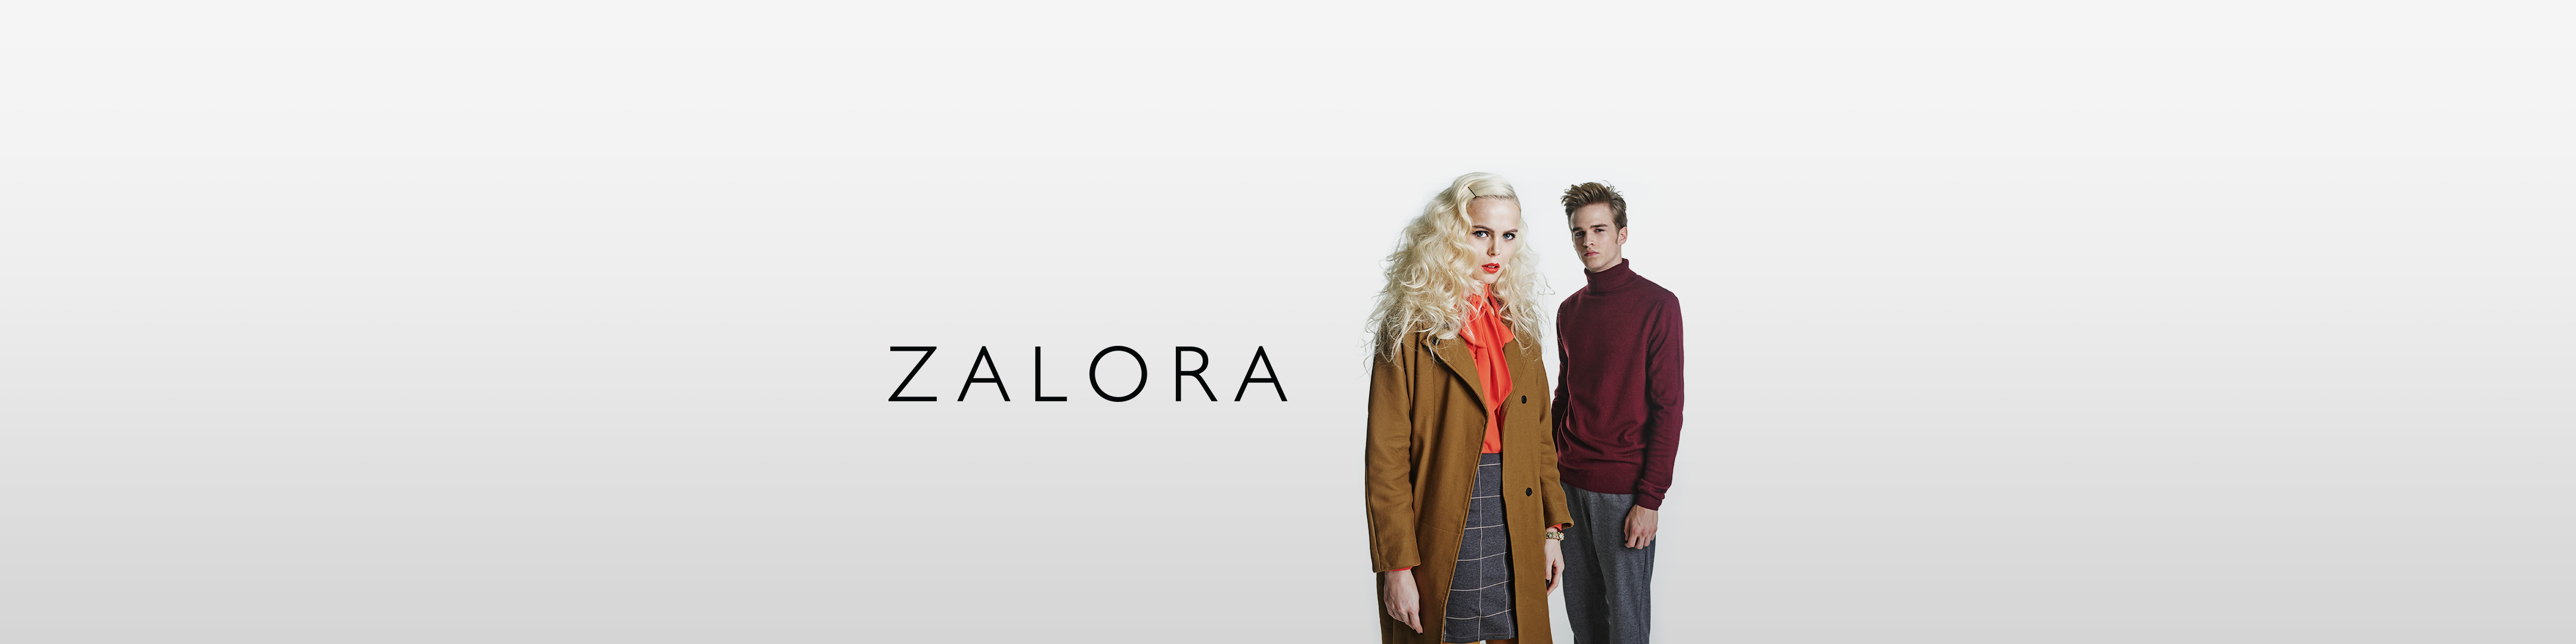 ZALORA - Toko Fashion Online - Revenue   Download estimates - Apple ... a2bf427101